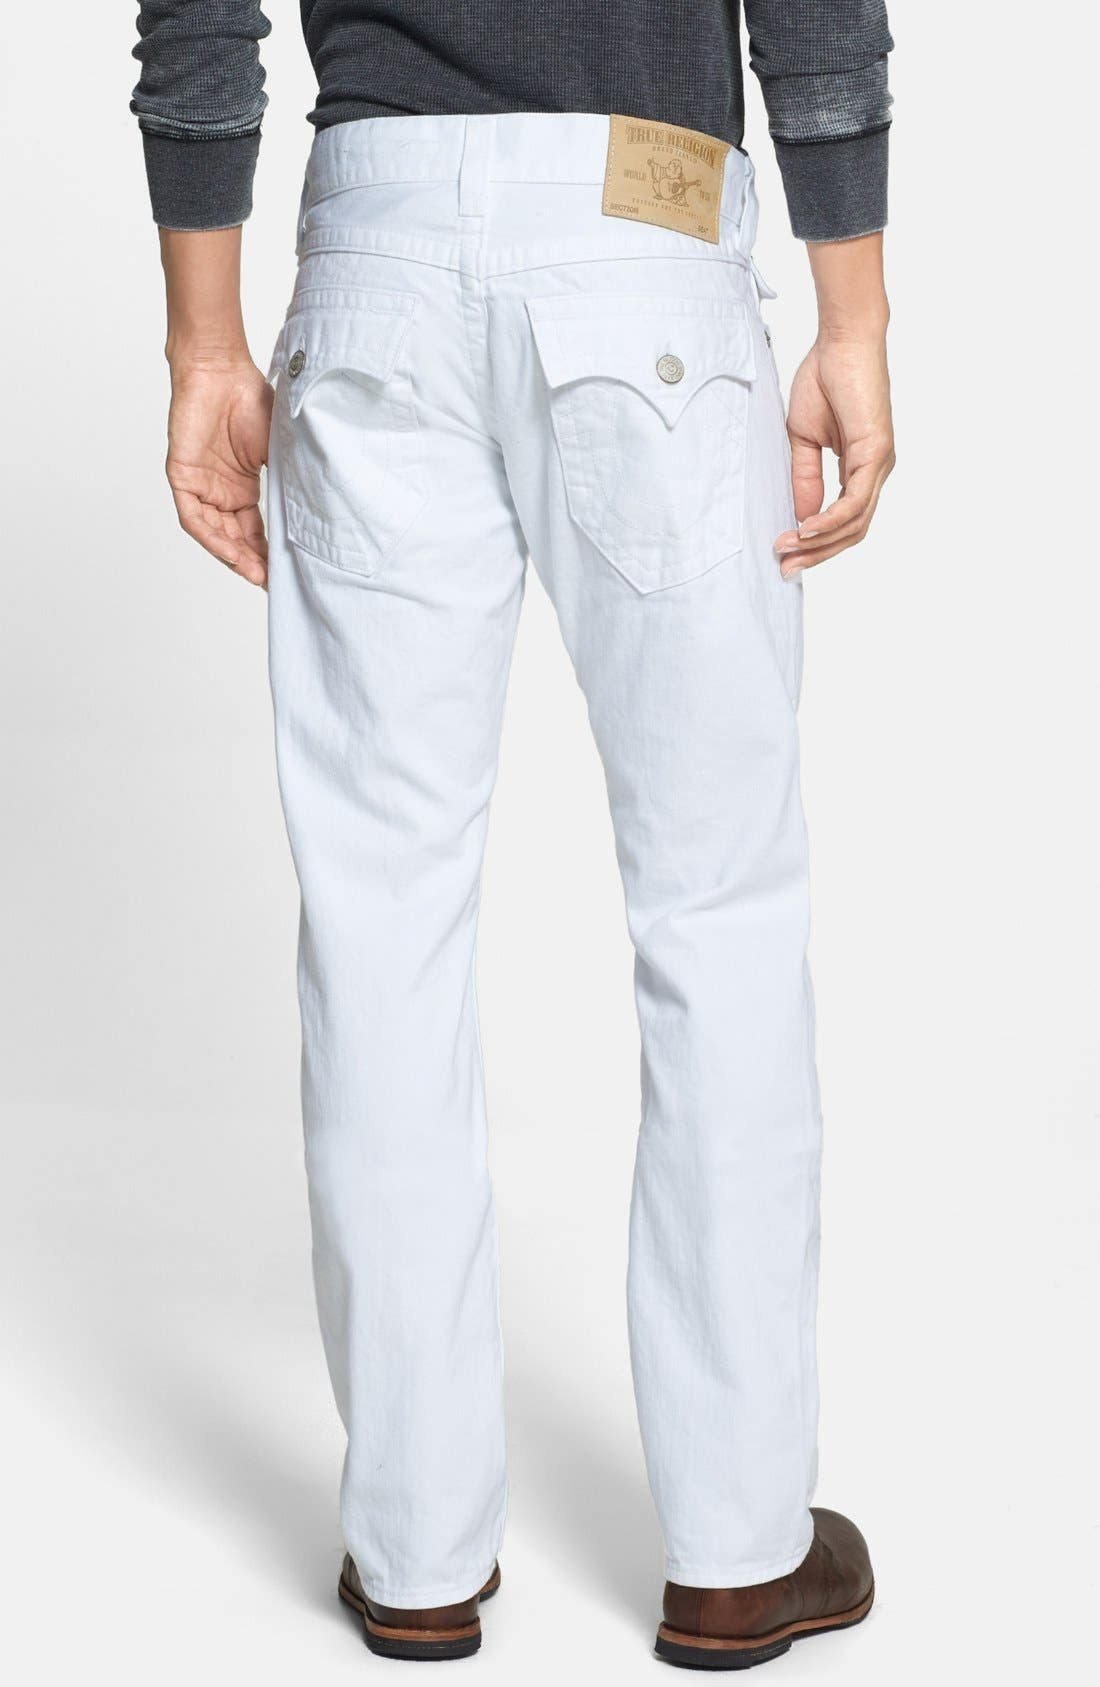 Alternate Image 1 Selected - True Religion Brand Jeans 'Ricky' Relaxed Fit Jeans (Optic White)